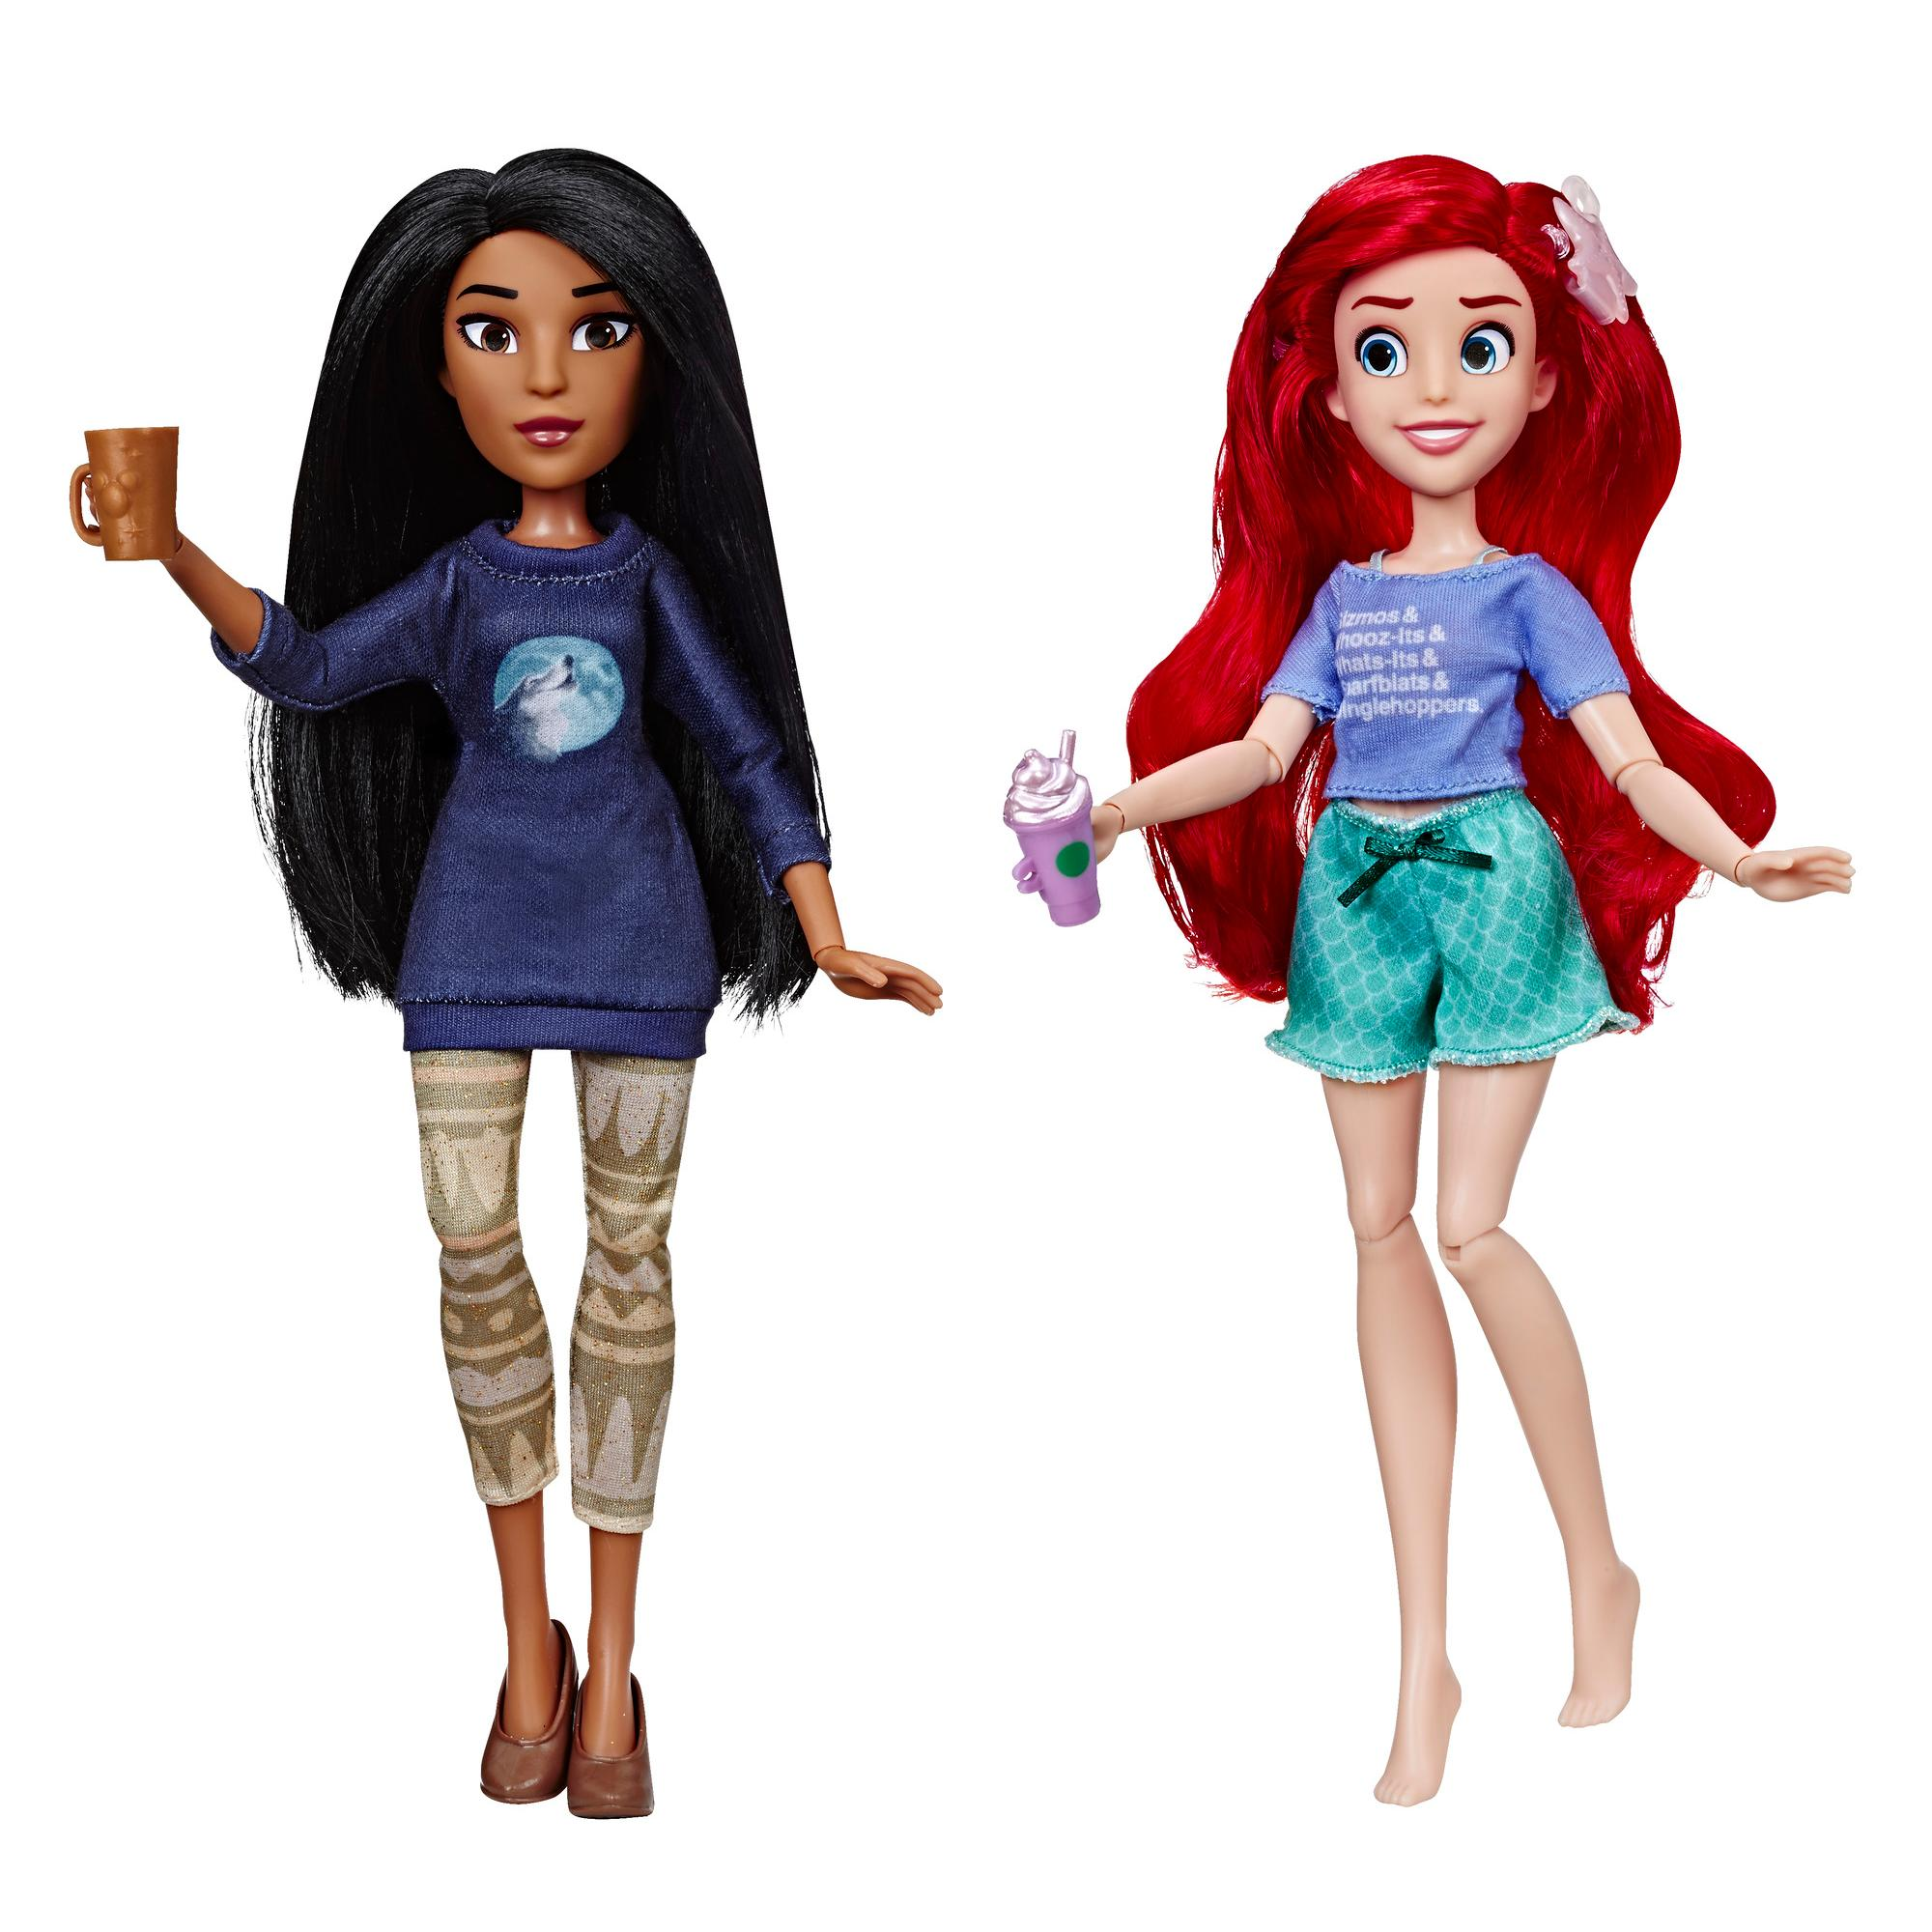 Disney Princess Ralph Breaks the Internet Movie Dolls, Ariel and Pocahontas Dolls